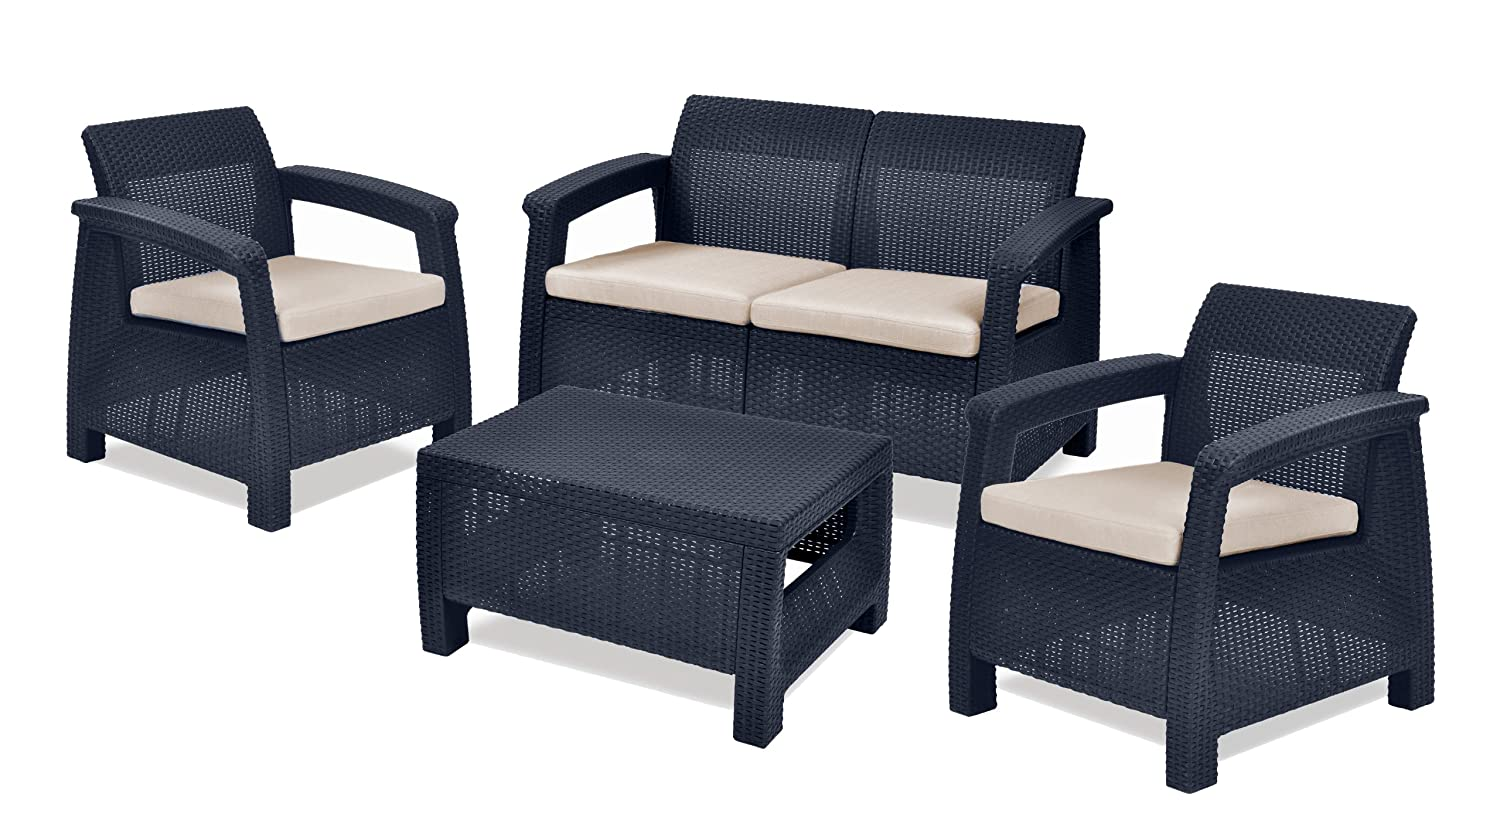 Mobilier De Jardin Keter 4 Pcs Garden Furniture Set Keter Corfu With Table Plastic